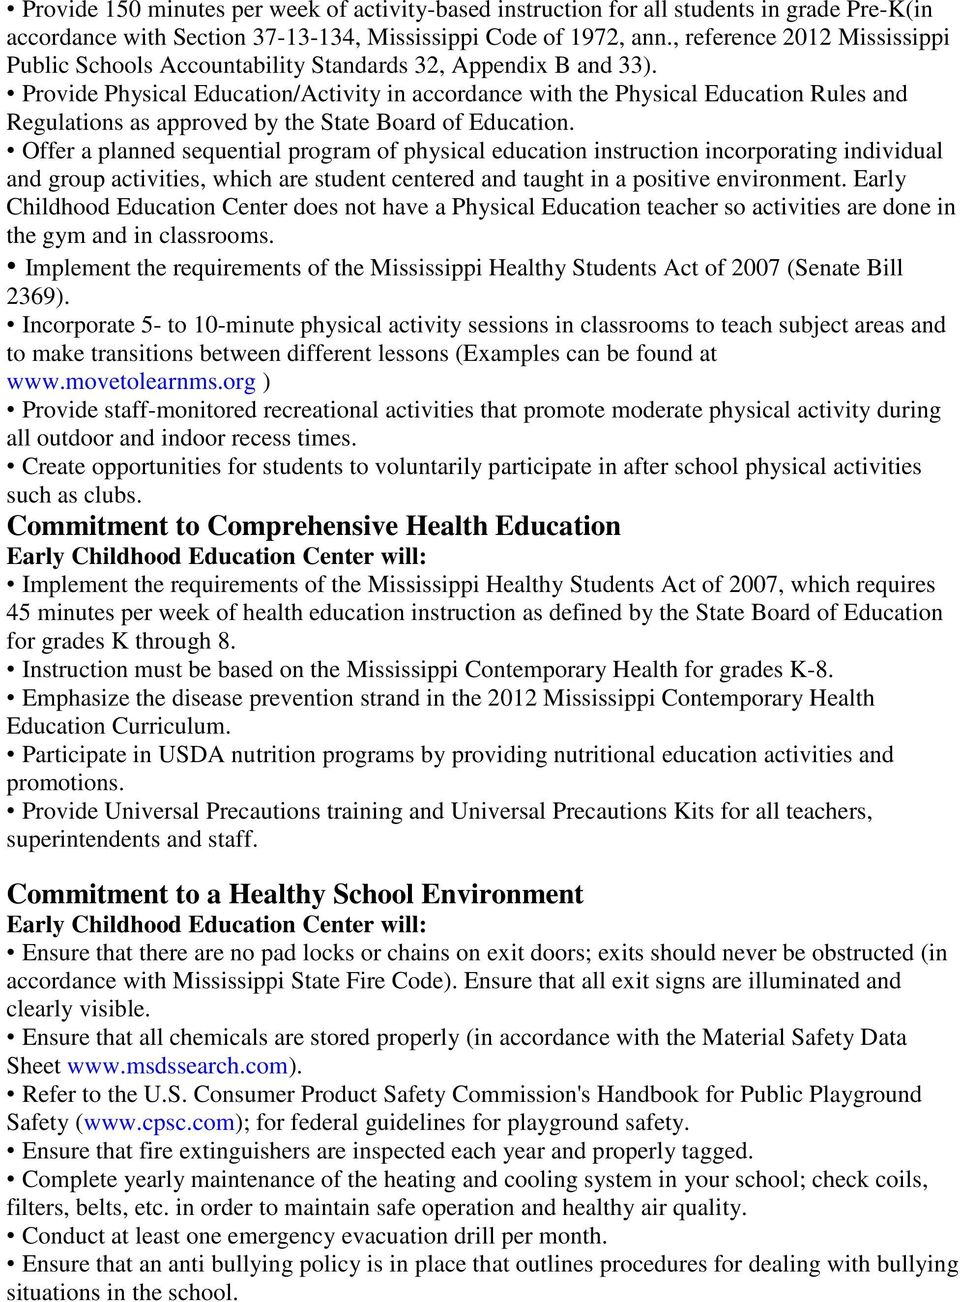 Provide Physical Education/Activity in accordance with the Physical Education Rules and Regulations as approved by the State Board of Education.